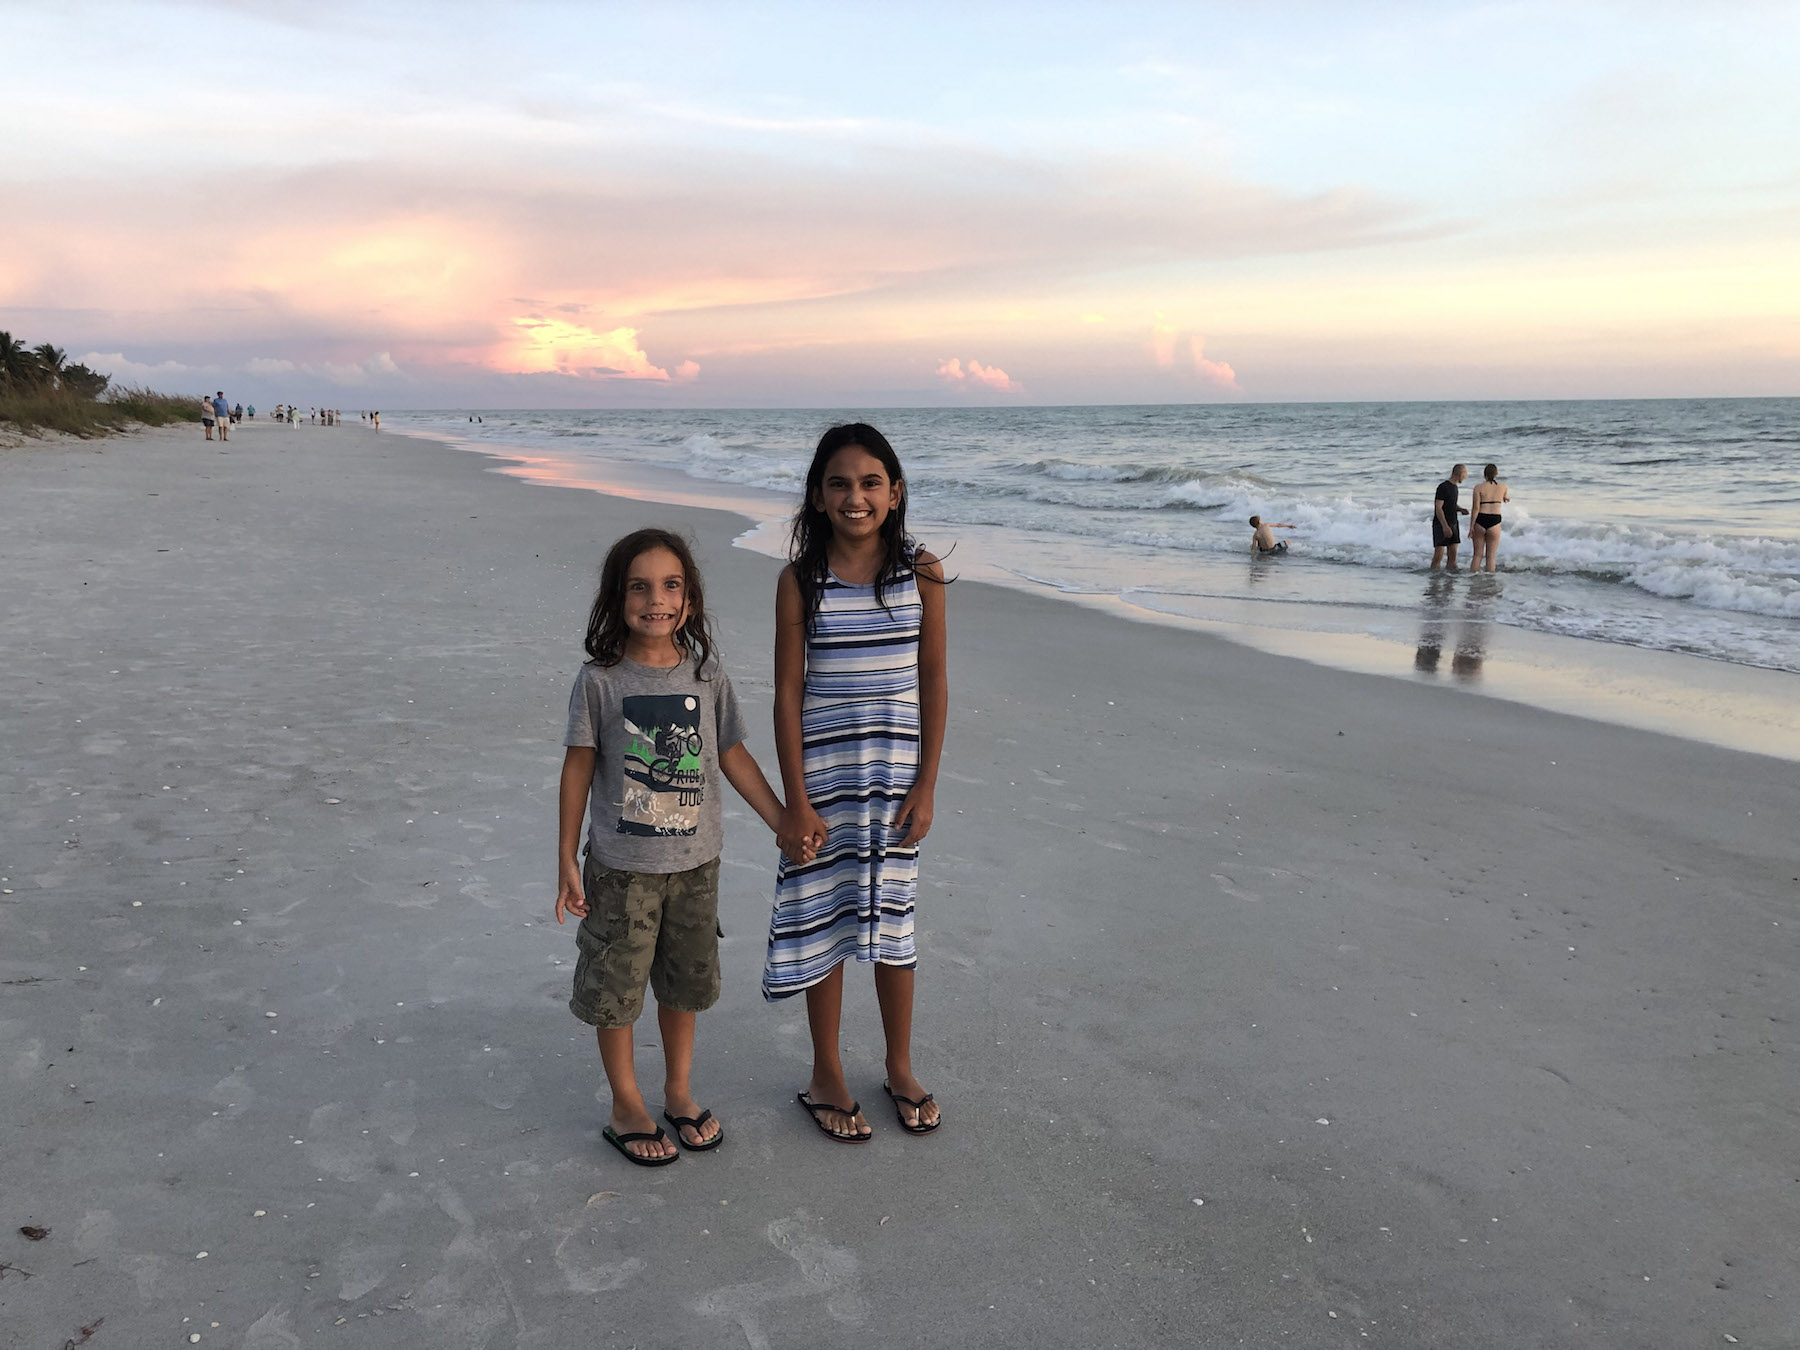 My kids on Sanibel Island at sunset. Visiting Sanibel Island With Kids? You'll want to read this!